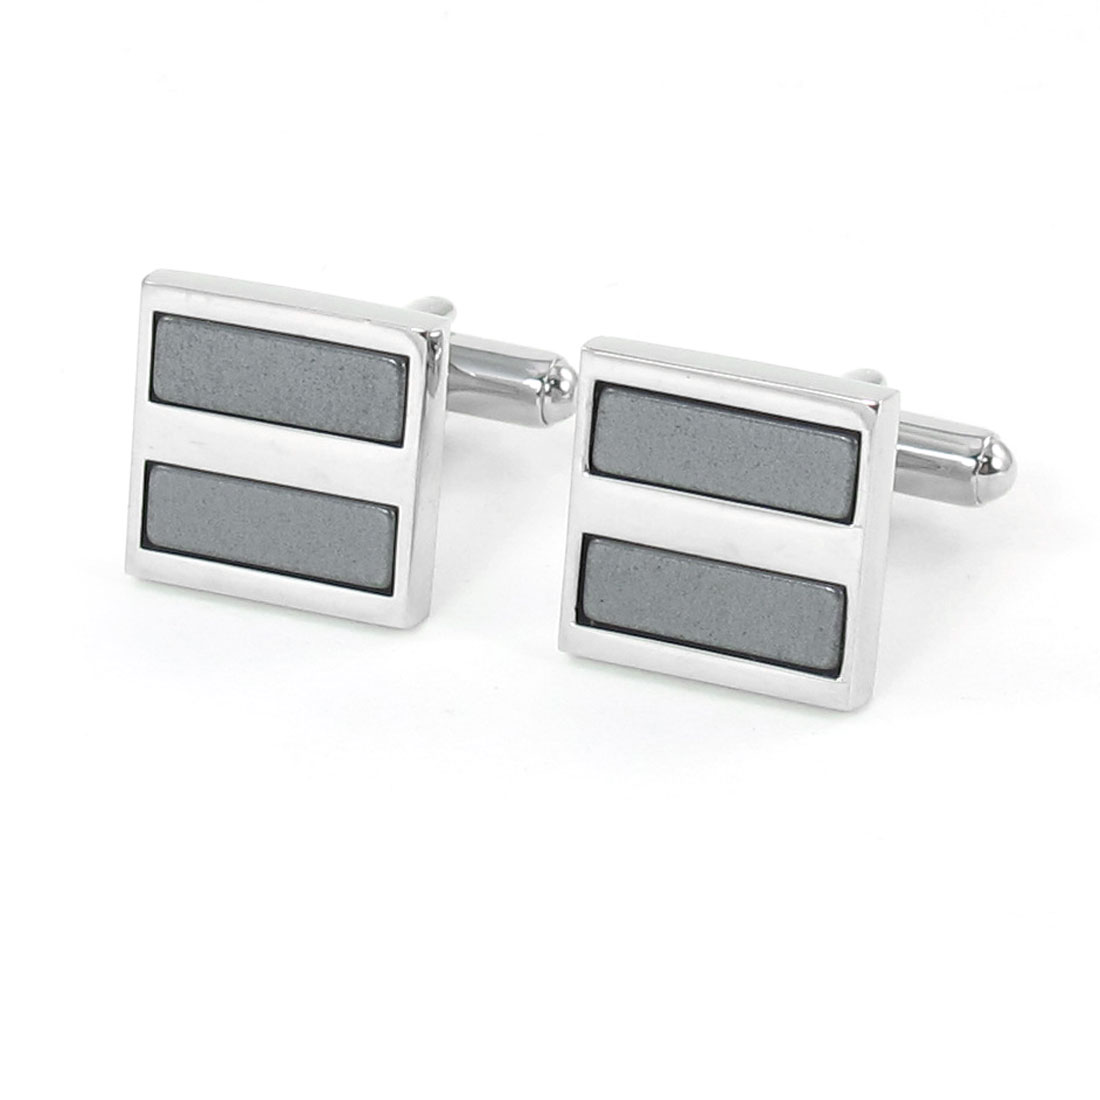 Pair Men Square Shaped Dark Gray Silver Tone Tuxedo Shirt Decor Cufflink